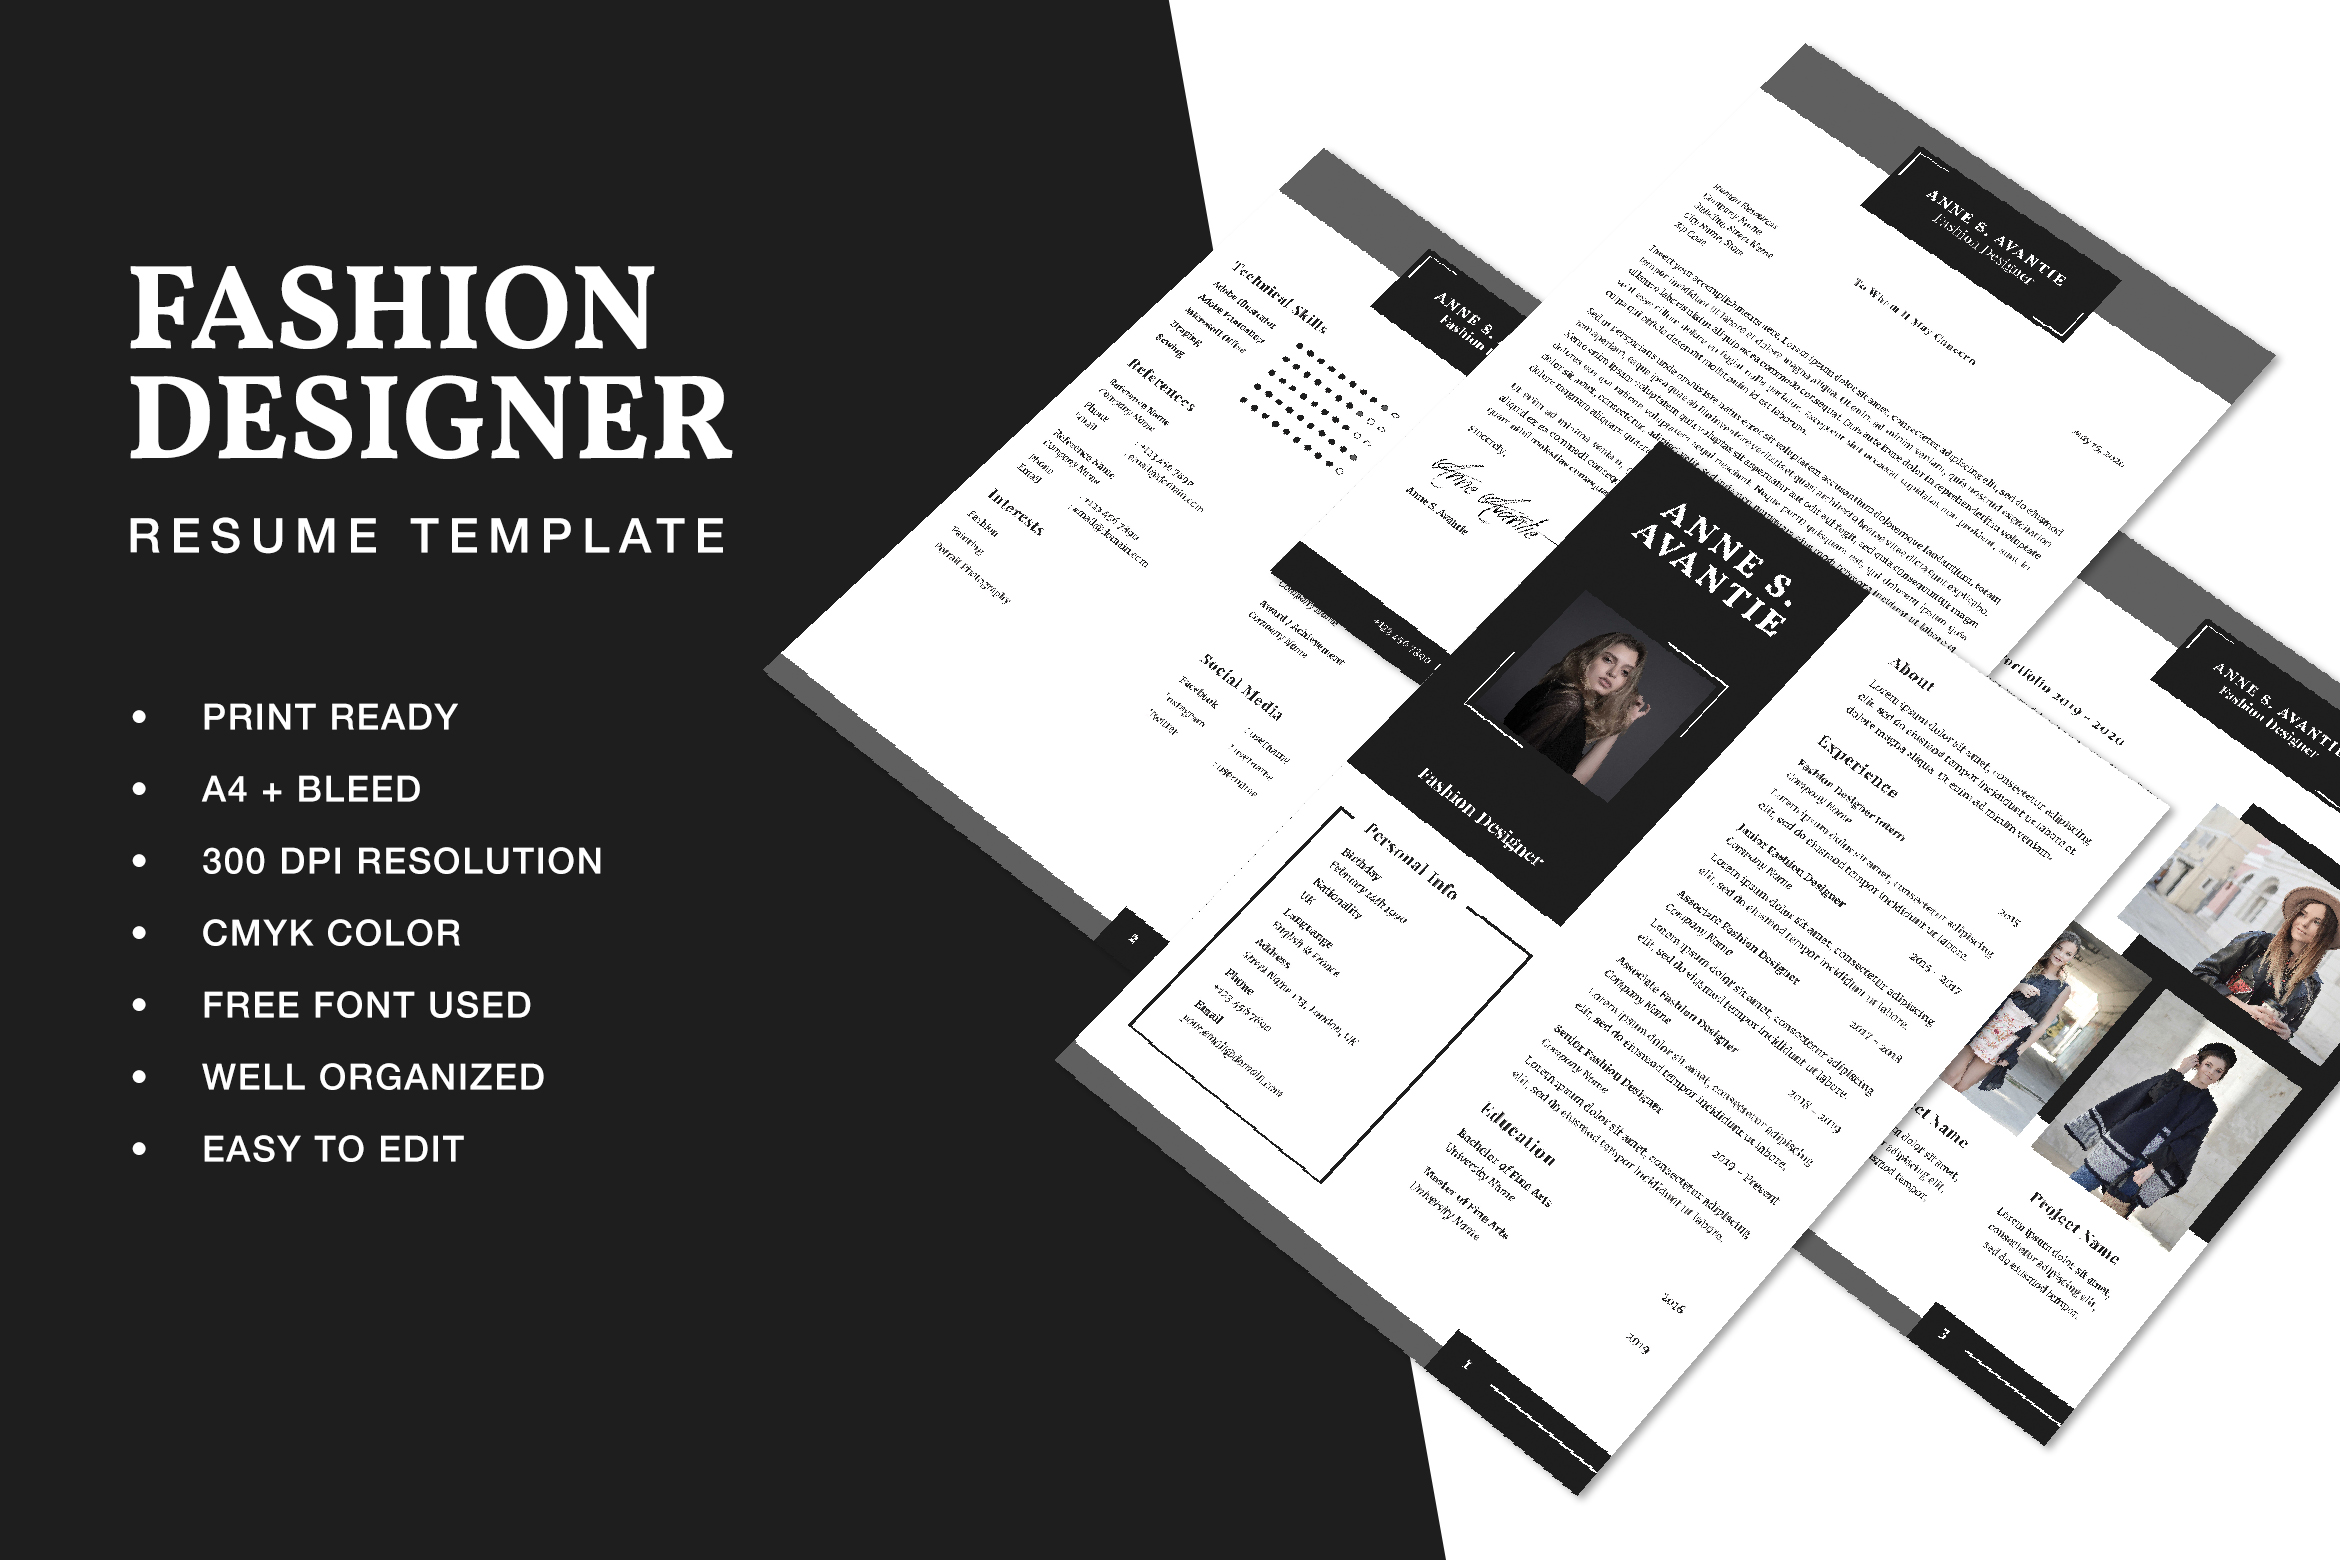 Fashion Designer Resume Cv Template Graphic By Formatikastd Creative Fabrica